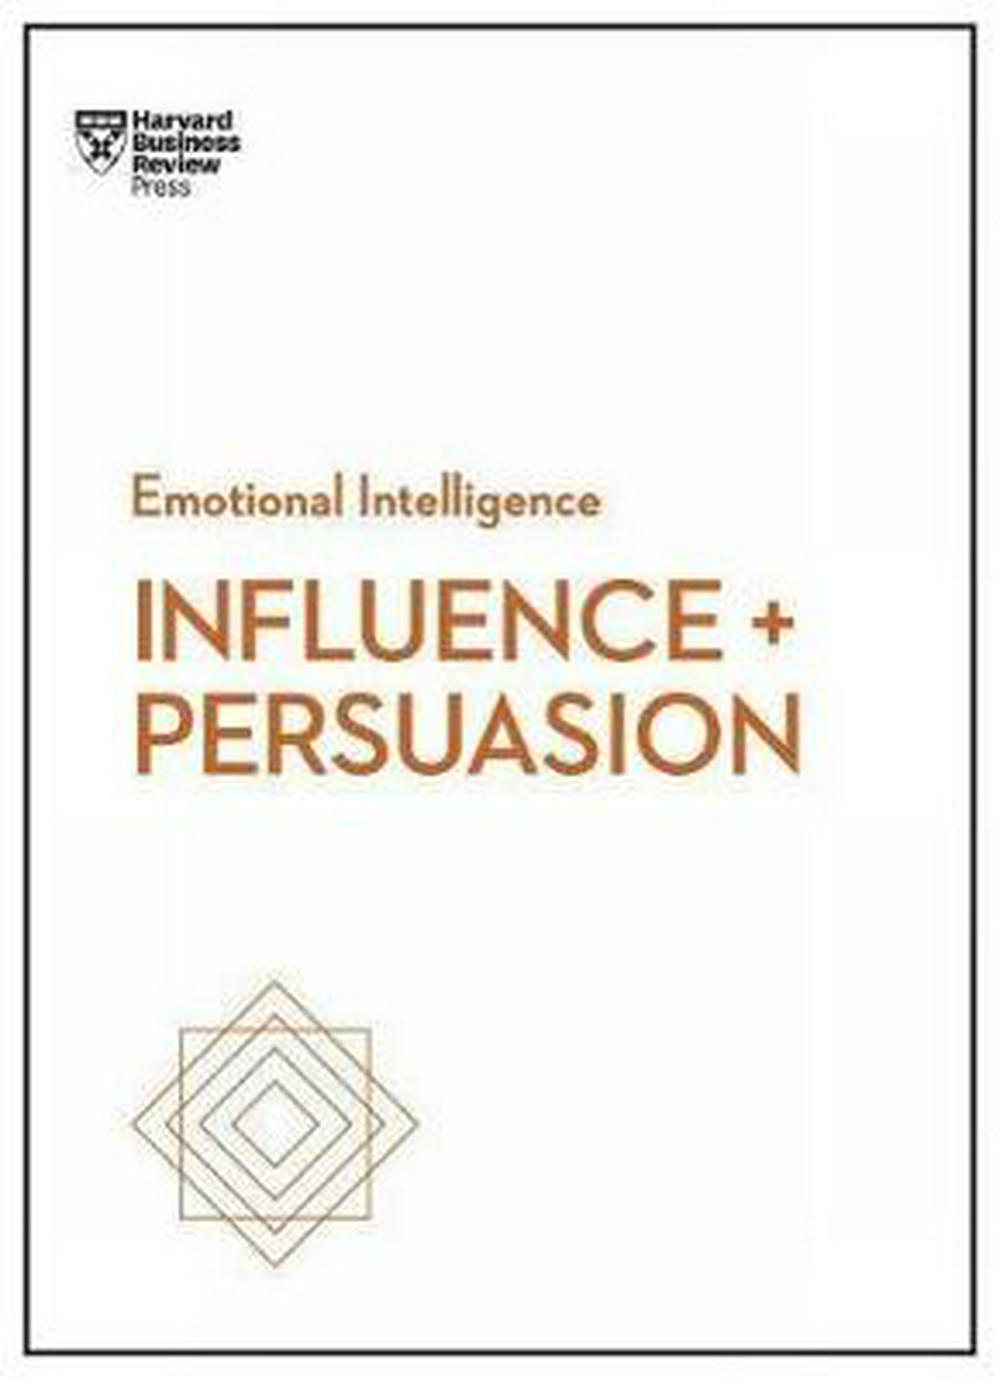 Influence and Persuasion (HBR Emotional Intelligence Series) by Harvard Business Review, ISBN: 9781633693937